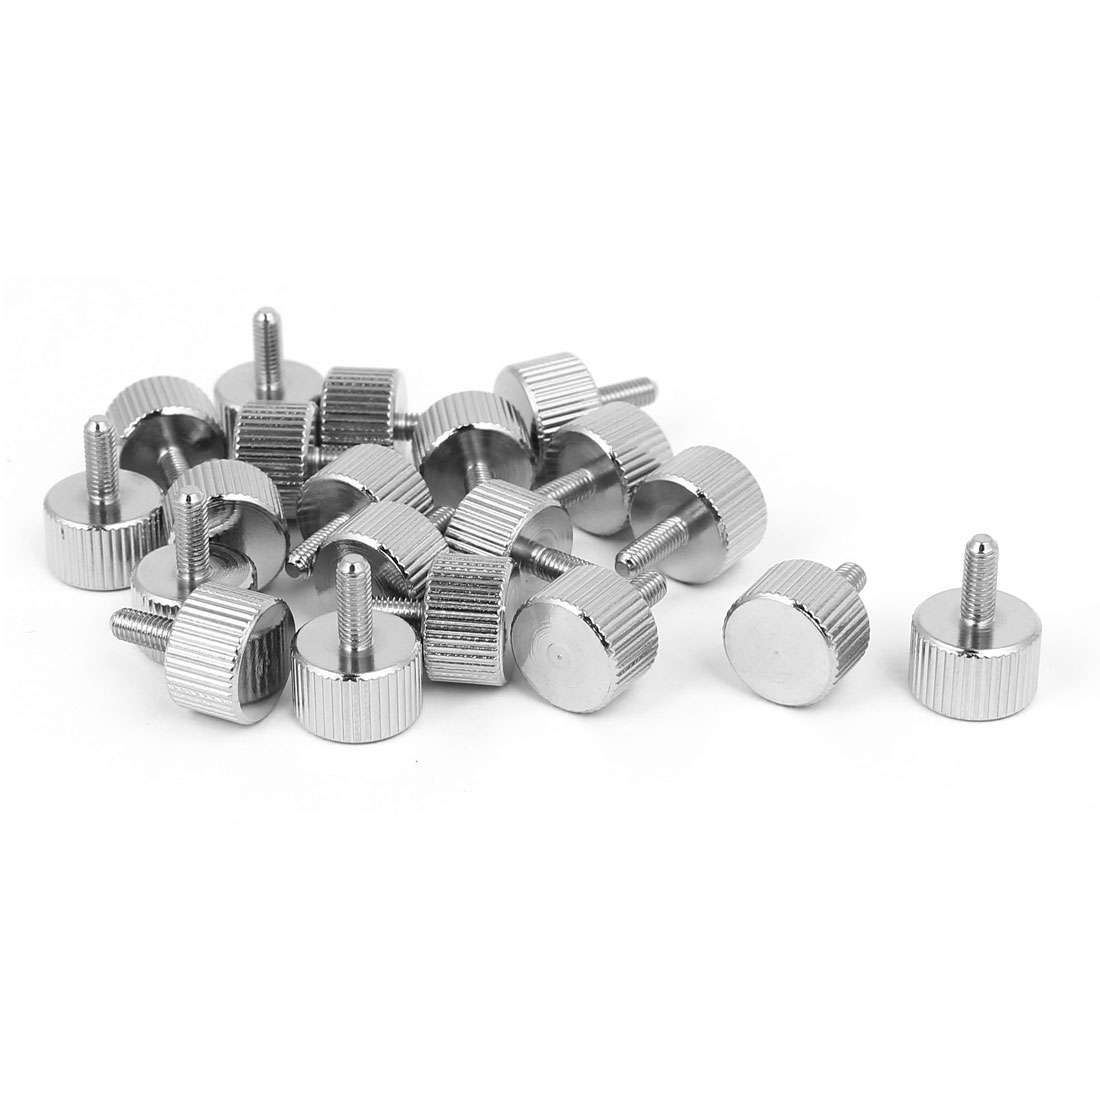 M3x8mm Nickel Plated Flat Head Knurled Thumb Screw 20pcs for Computer PC Case